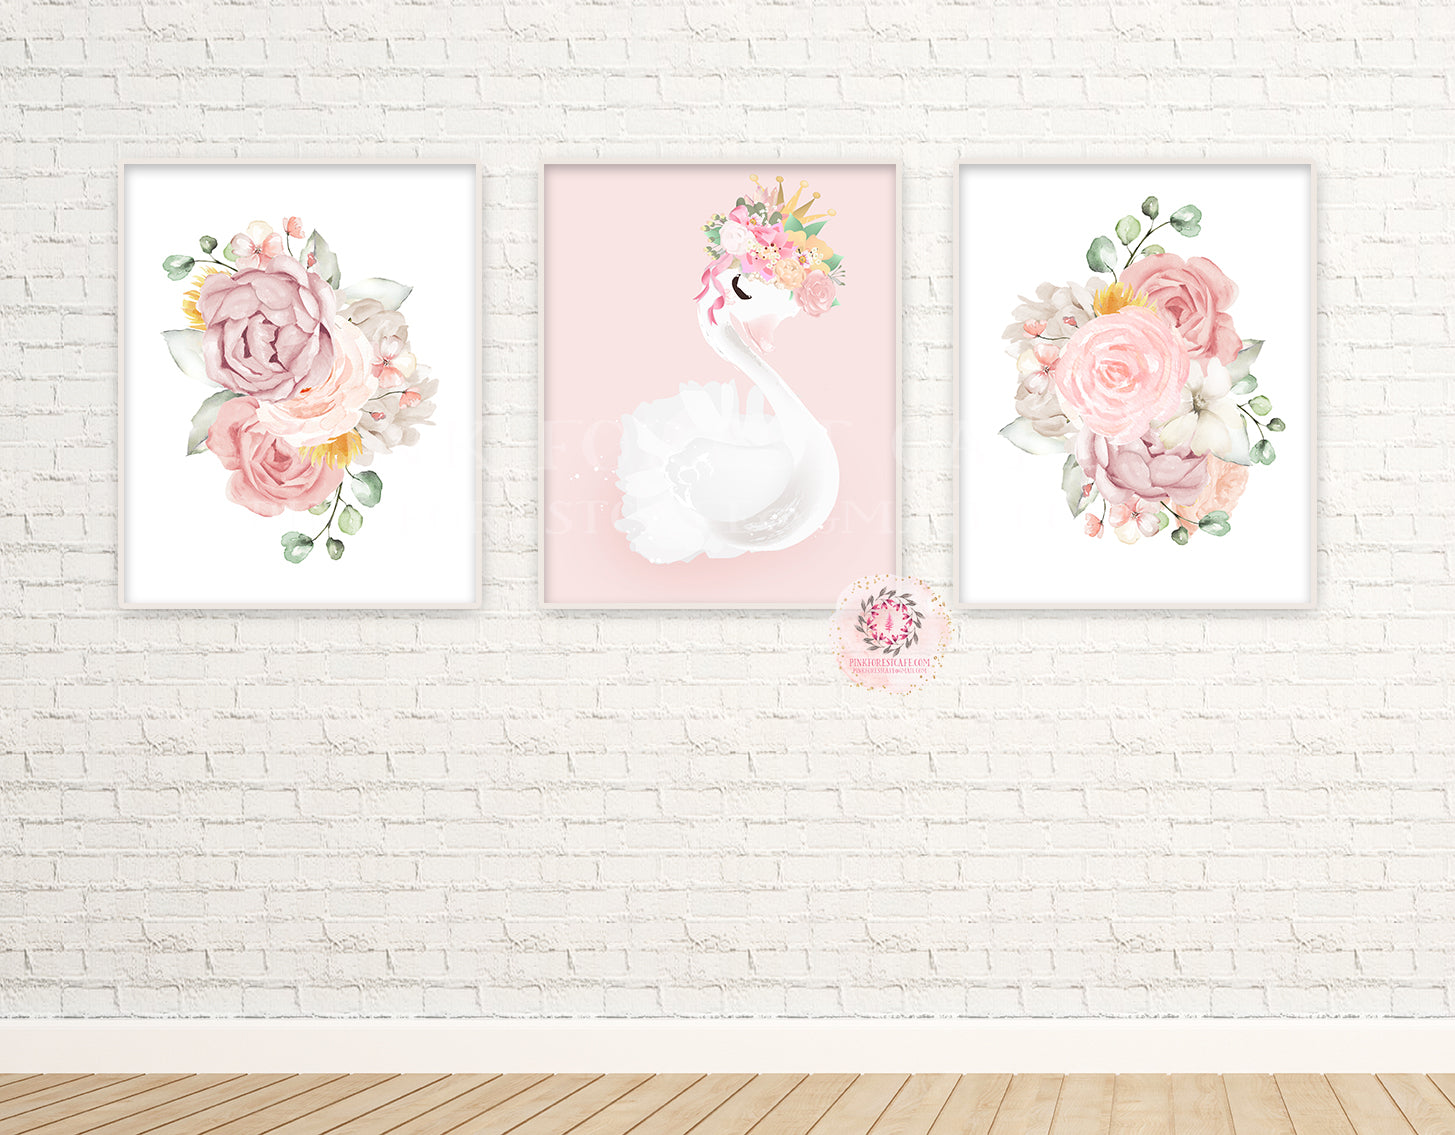 3 Boho Swan Baby Girl Nursery Wall Art Print Ethereal Pink Blush Peonies Whimsical Floral Printable Peony Decor